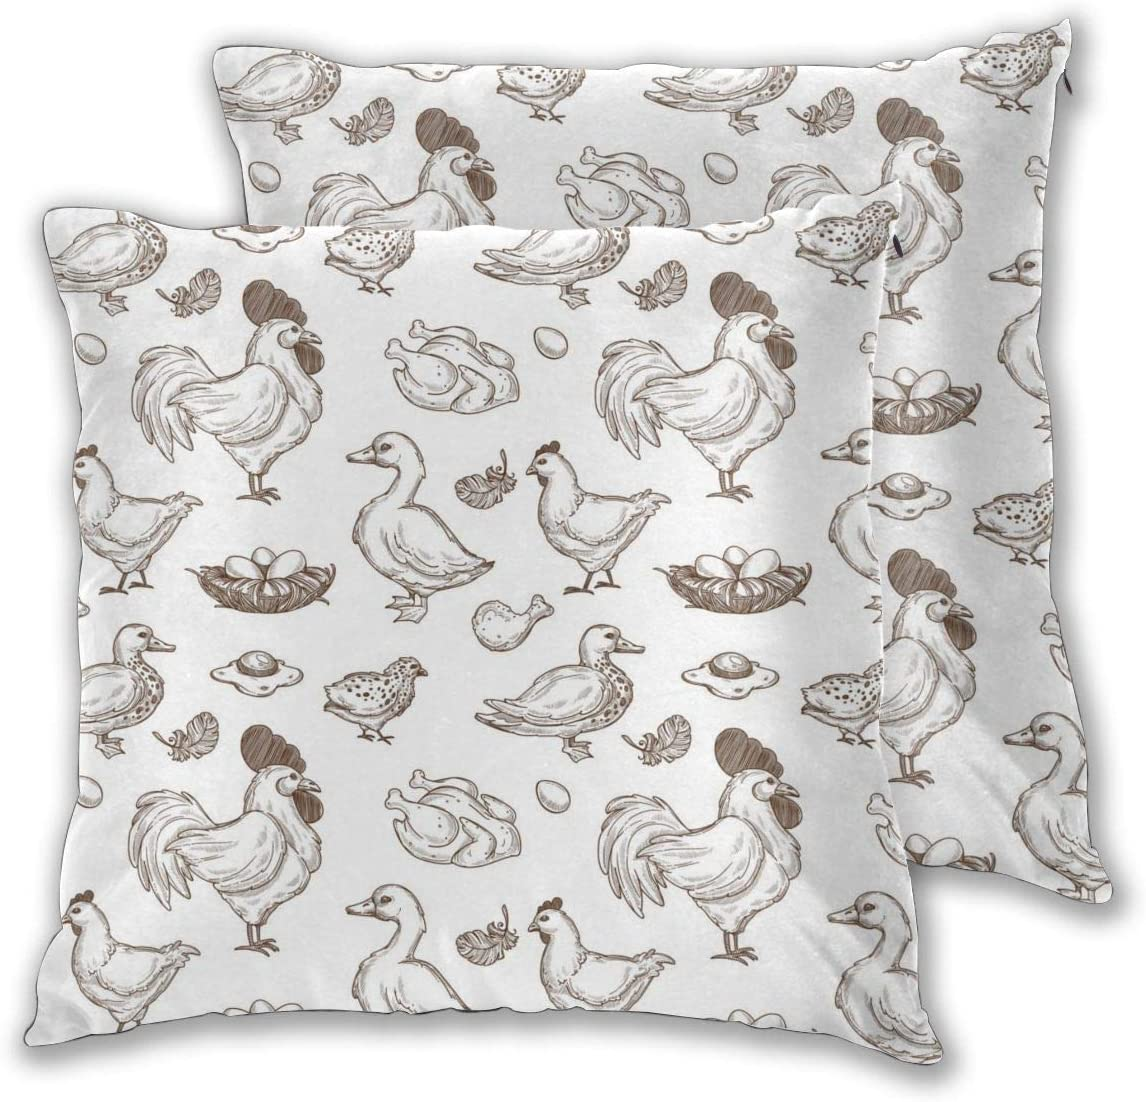 D-WOLVES Farm Chicken and Duck Sketch Set of 2 Throw Pillow Covers, Farmhouse Pillow Cases, Fall Decorative Couch Cover for Cushion Sofa Bedroom Car Chair, 22 X 22 Inch